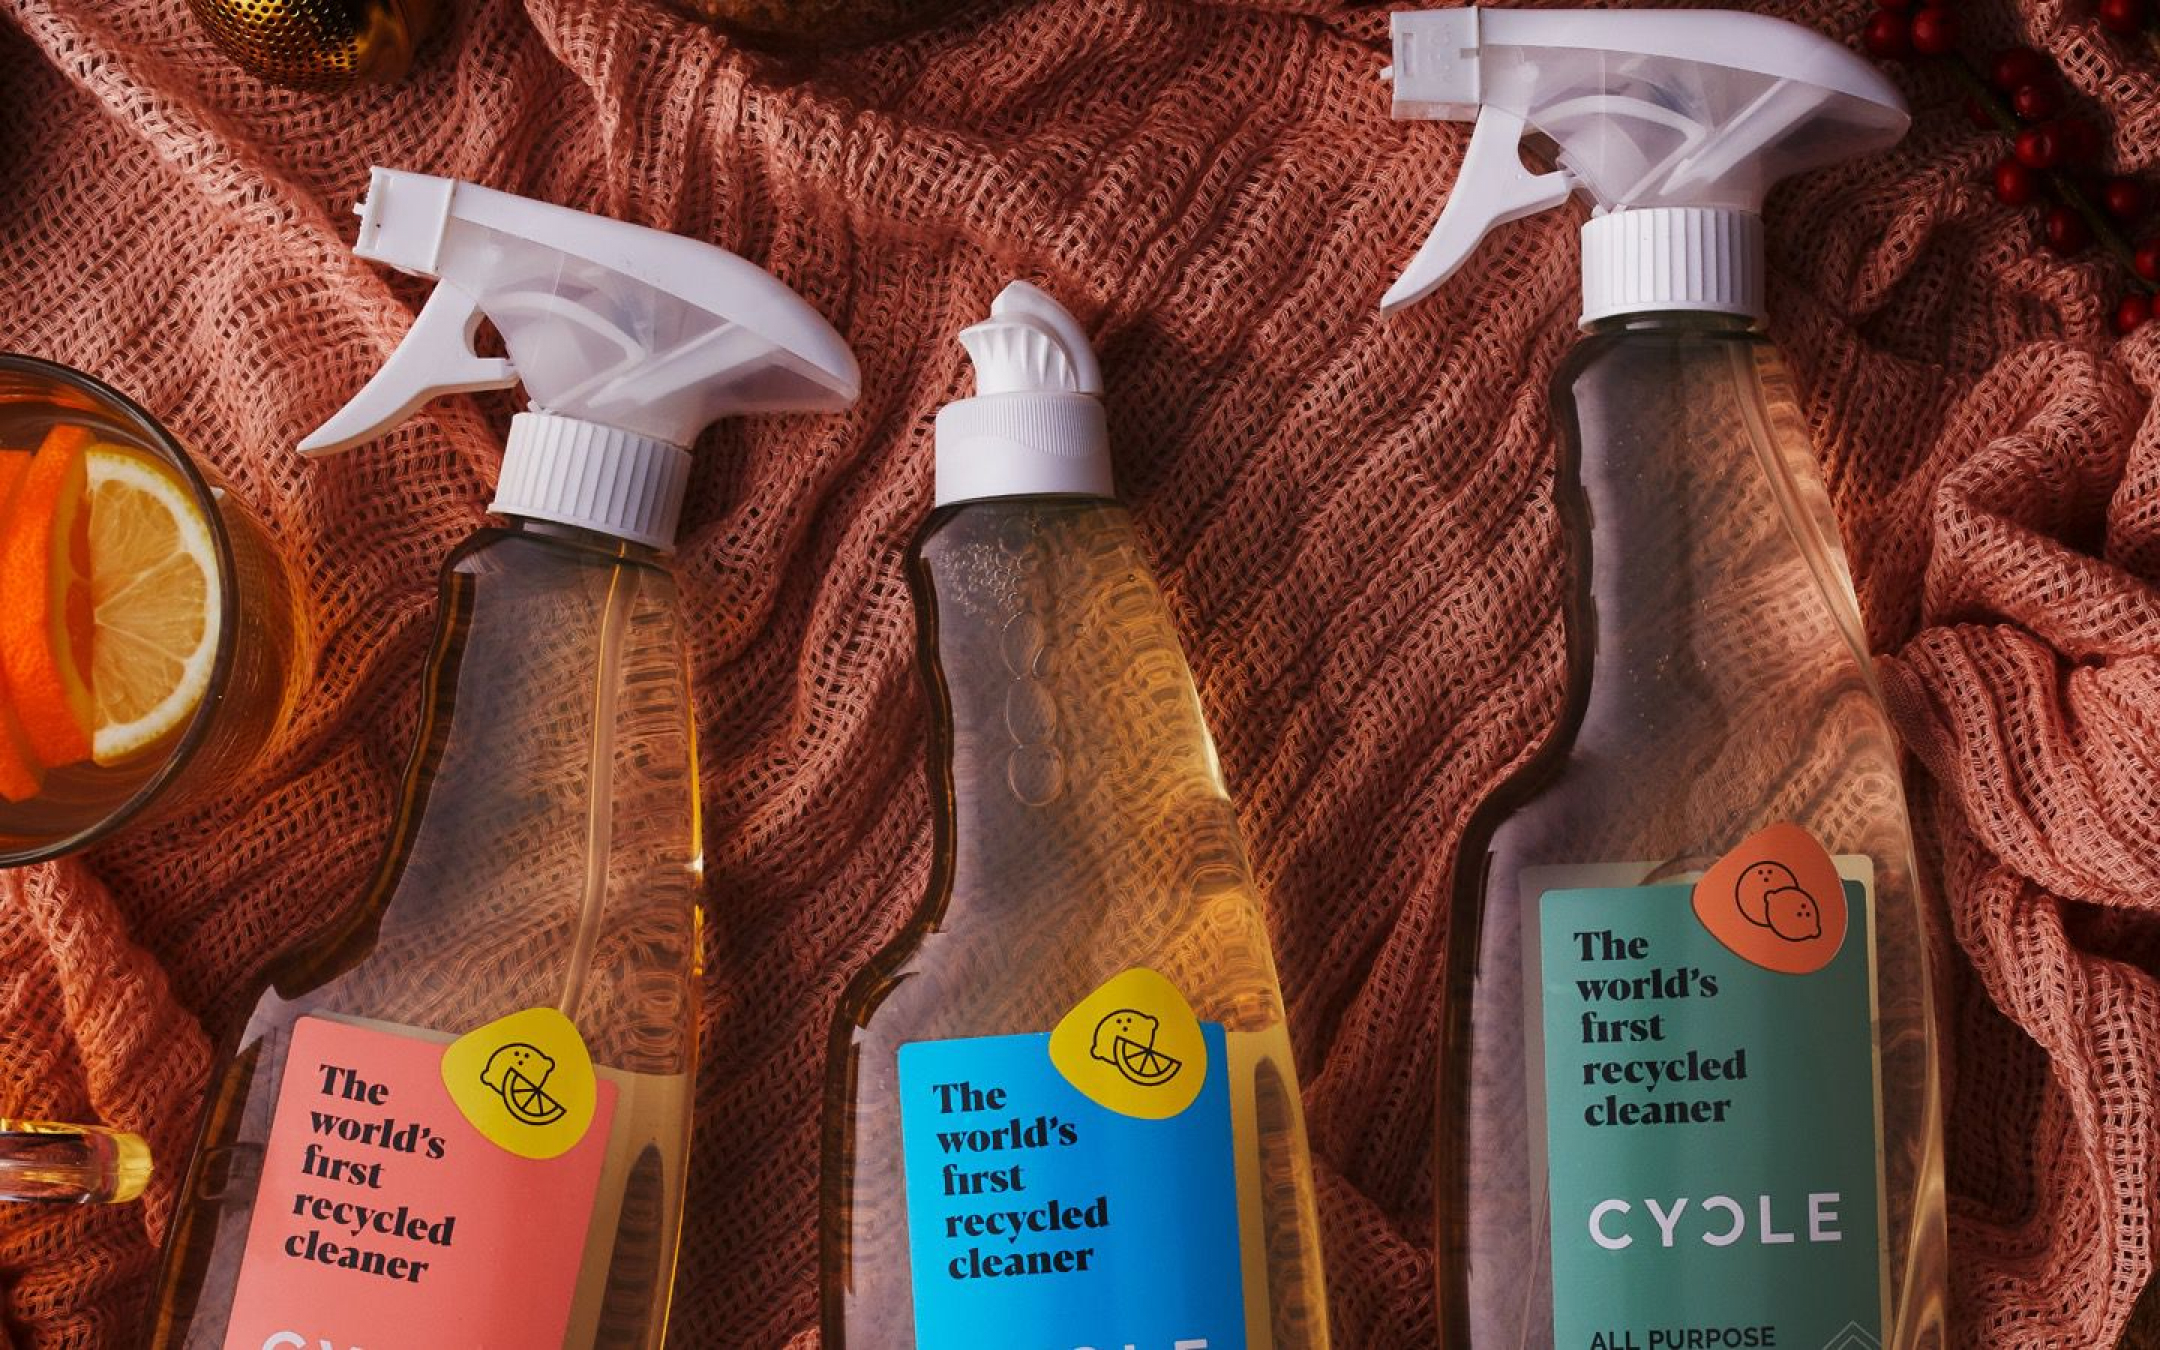 Cycle Household Cleaners